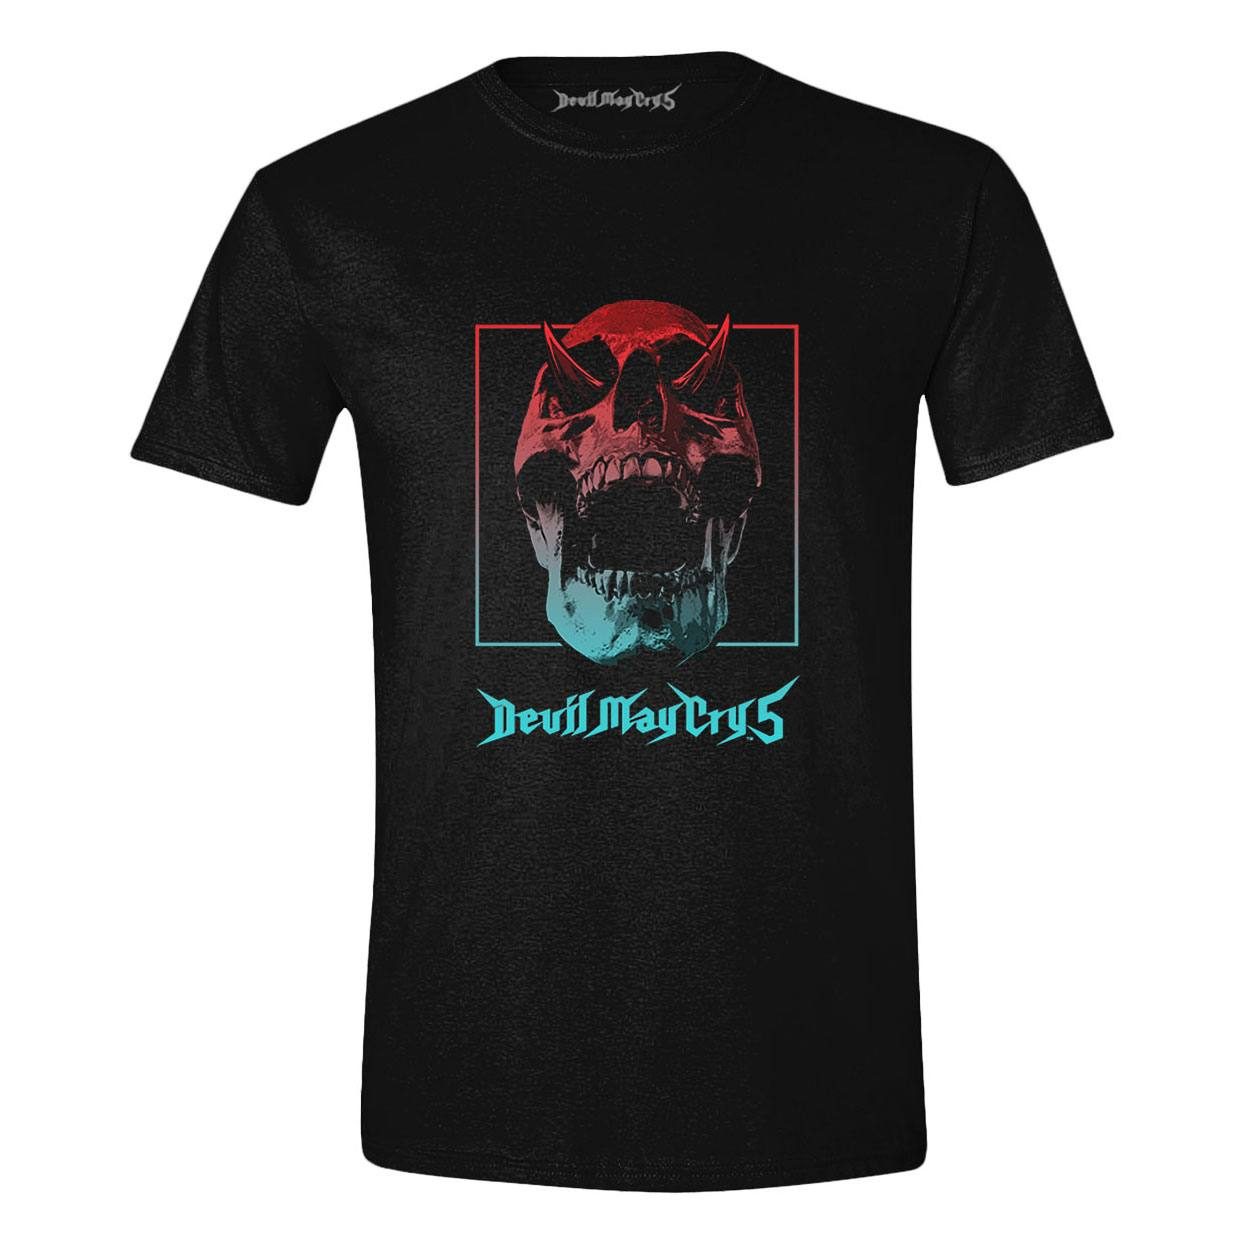 Devil May Cry 5 T-Shirt Skull Gradient Size XL